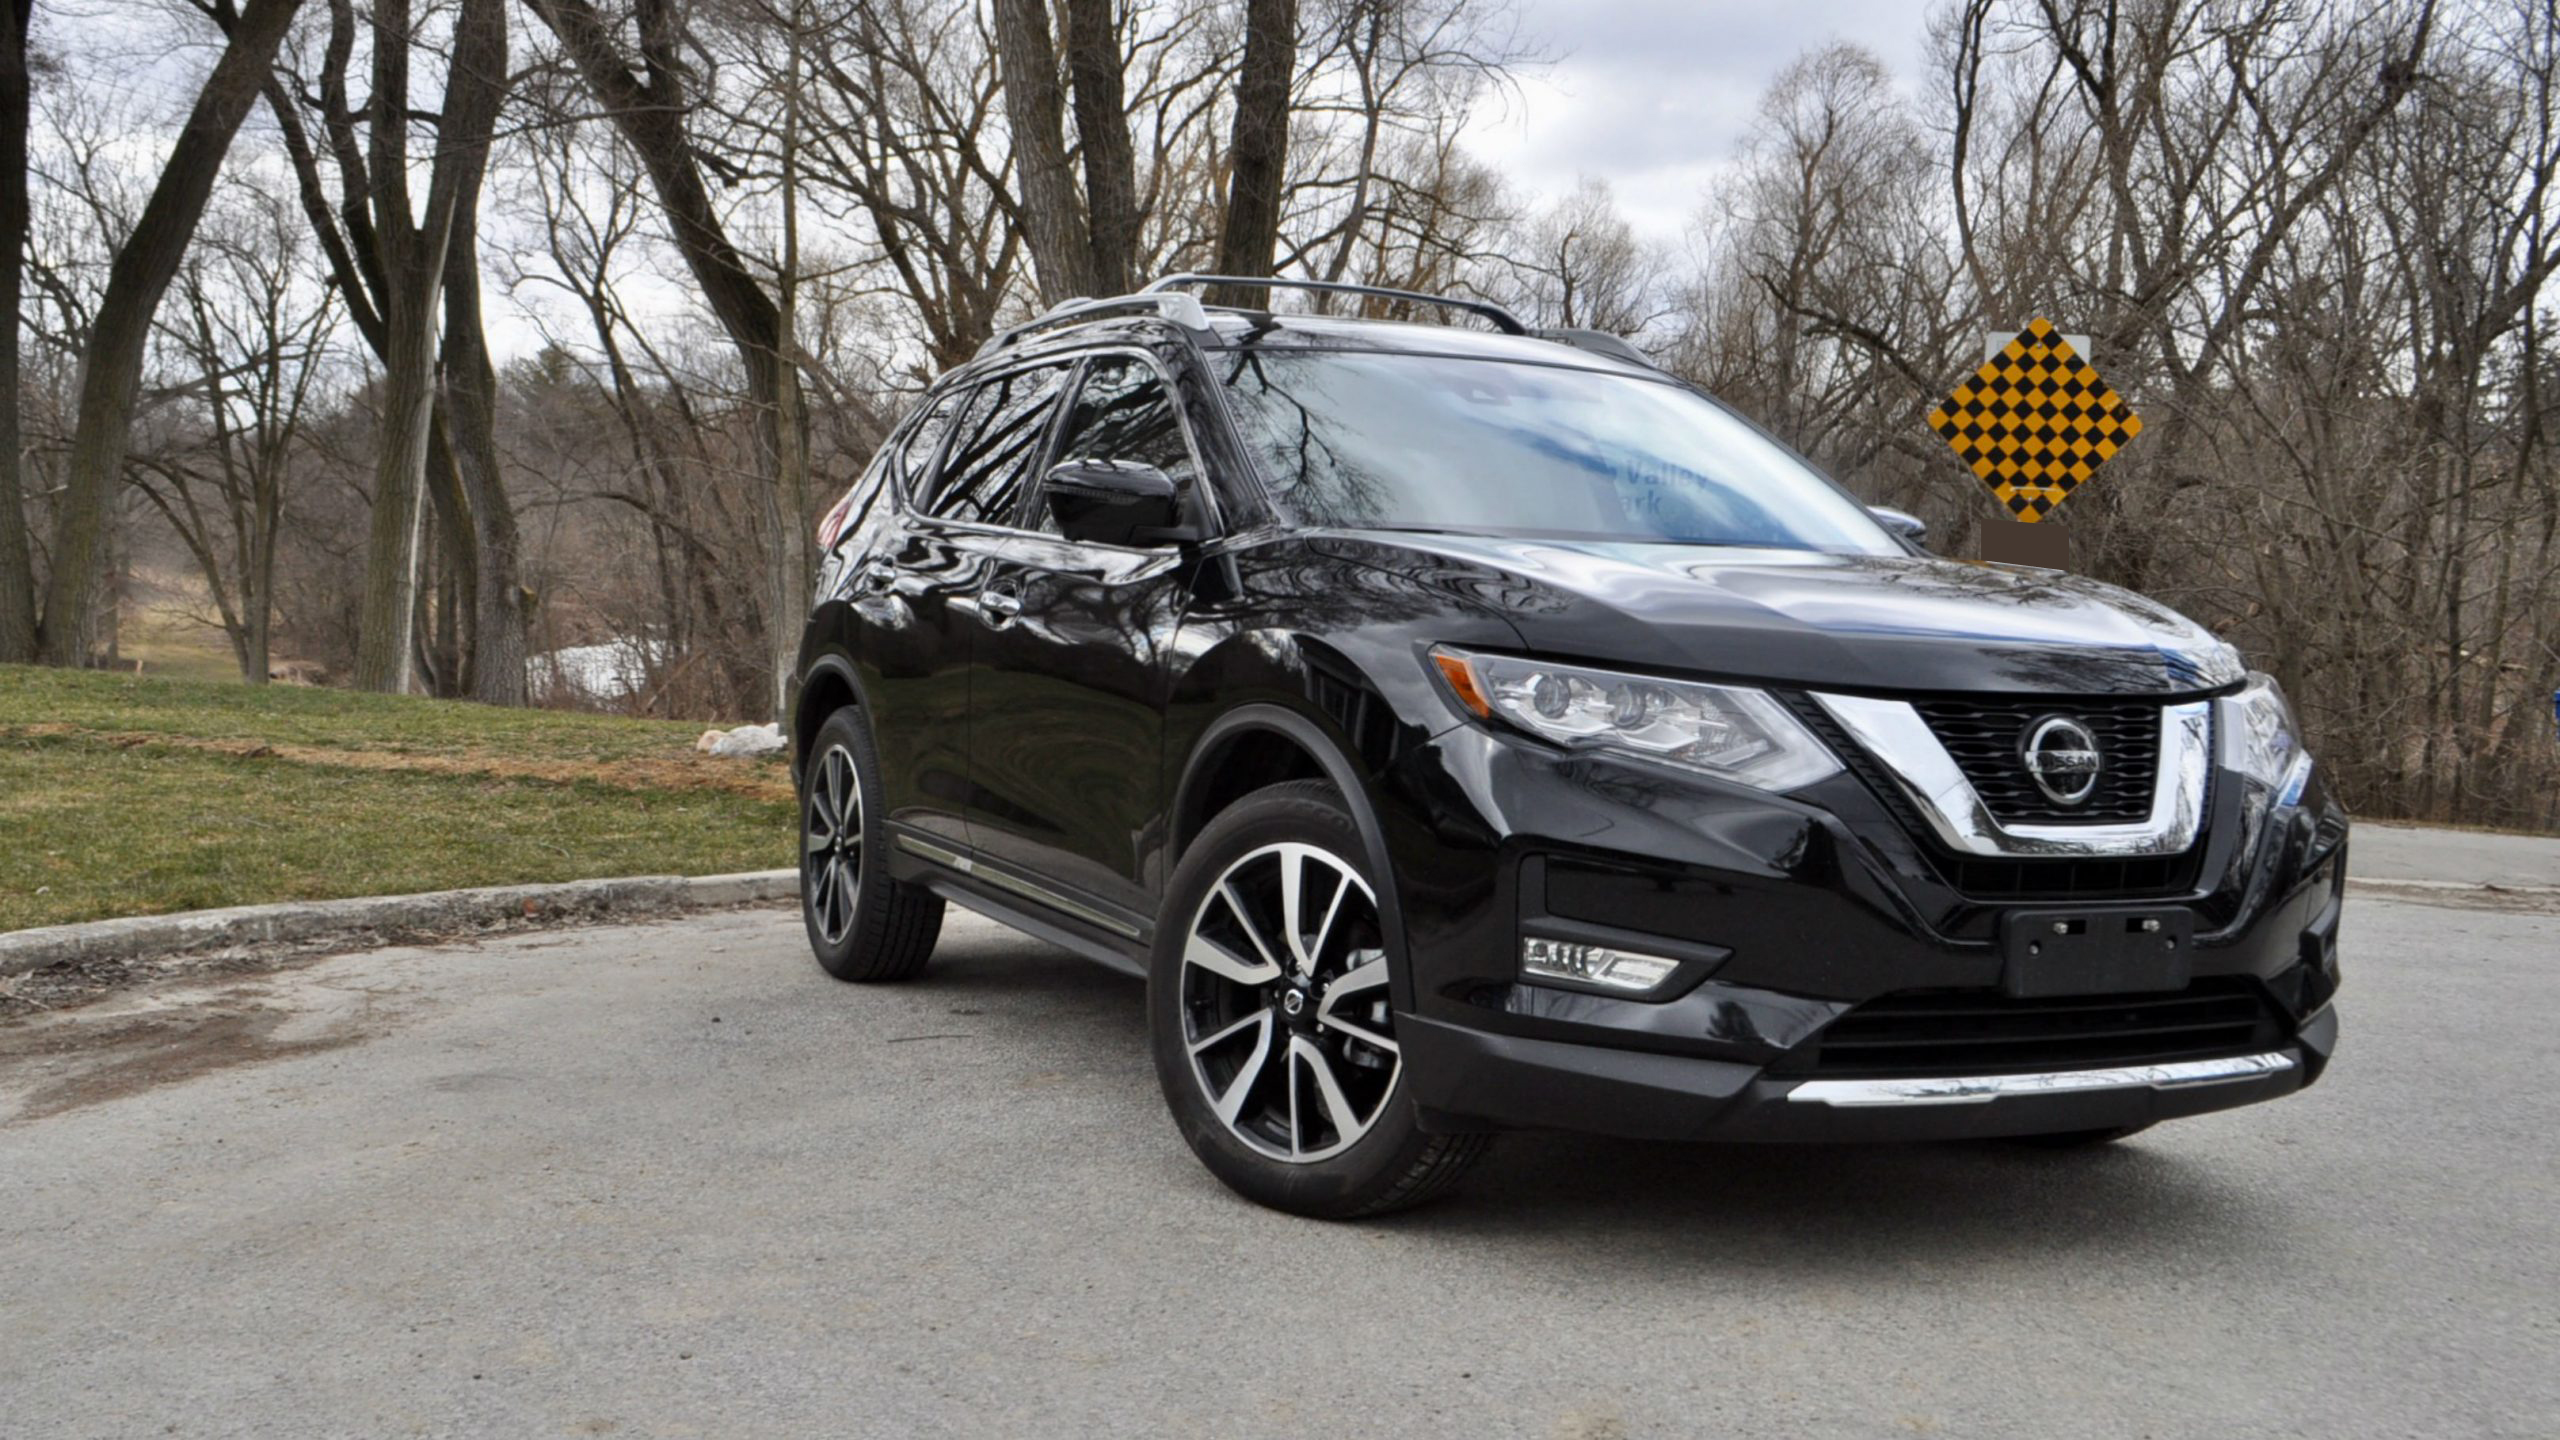 2022 Nissan Rogue Hybrid Games Accessories Roof Rack Cross Bars